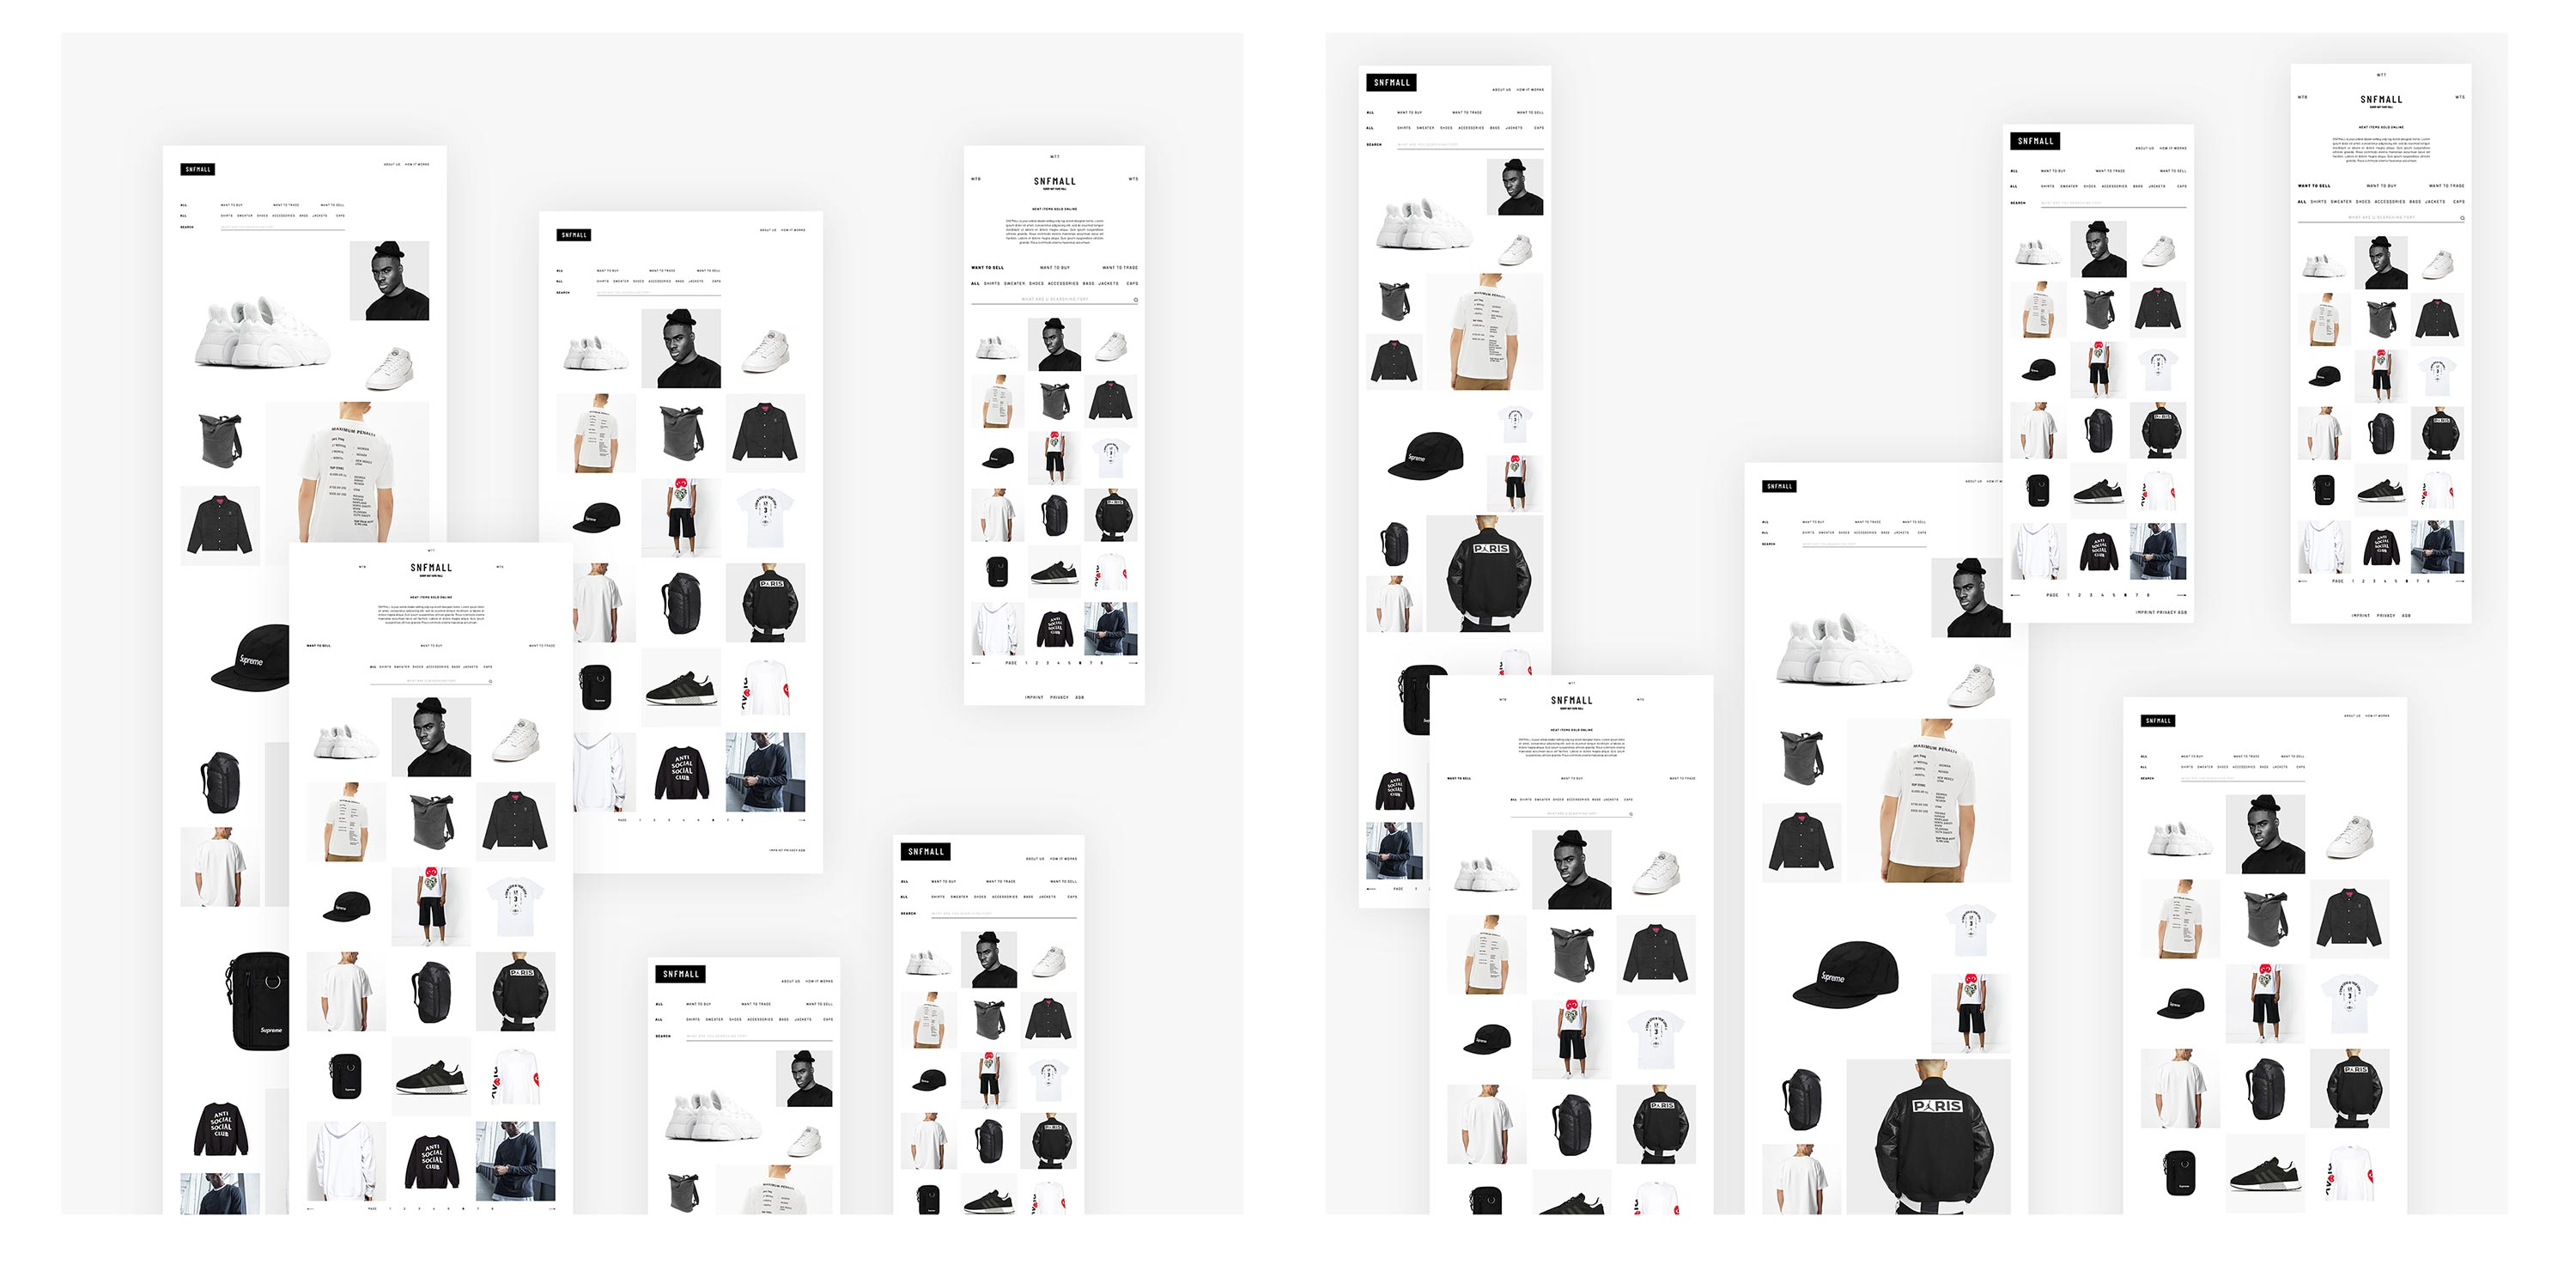 11-blockundstift-snf-mall-sorry-not-fame-mall-screendesign-website-design-instagram-user-experience